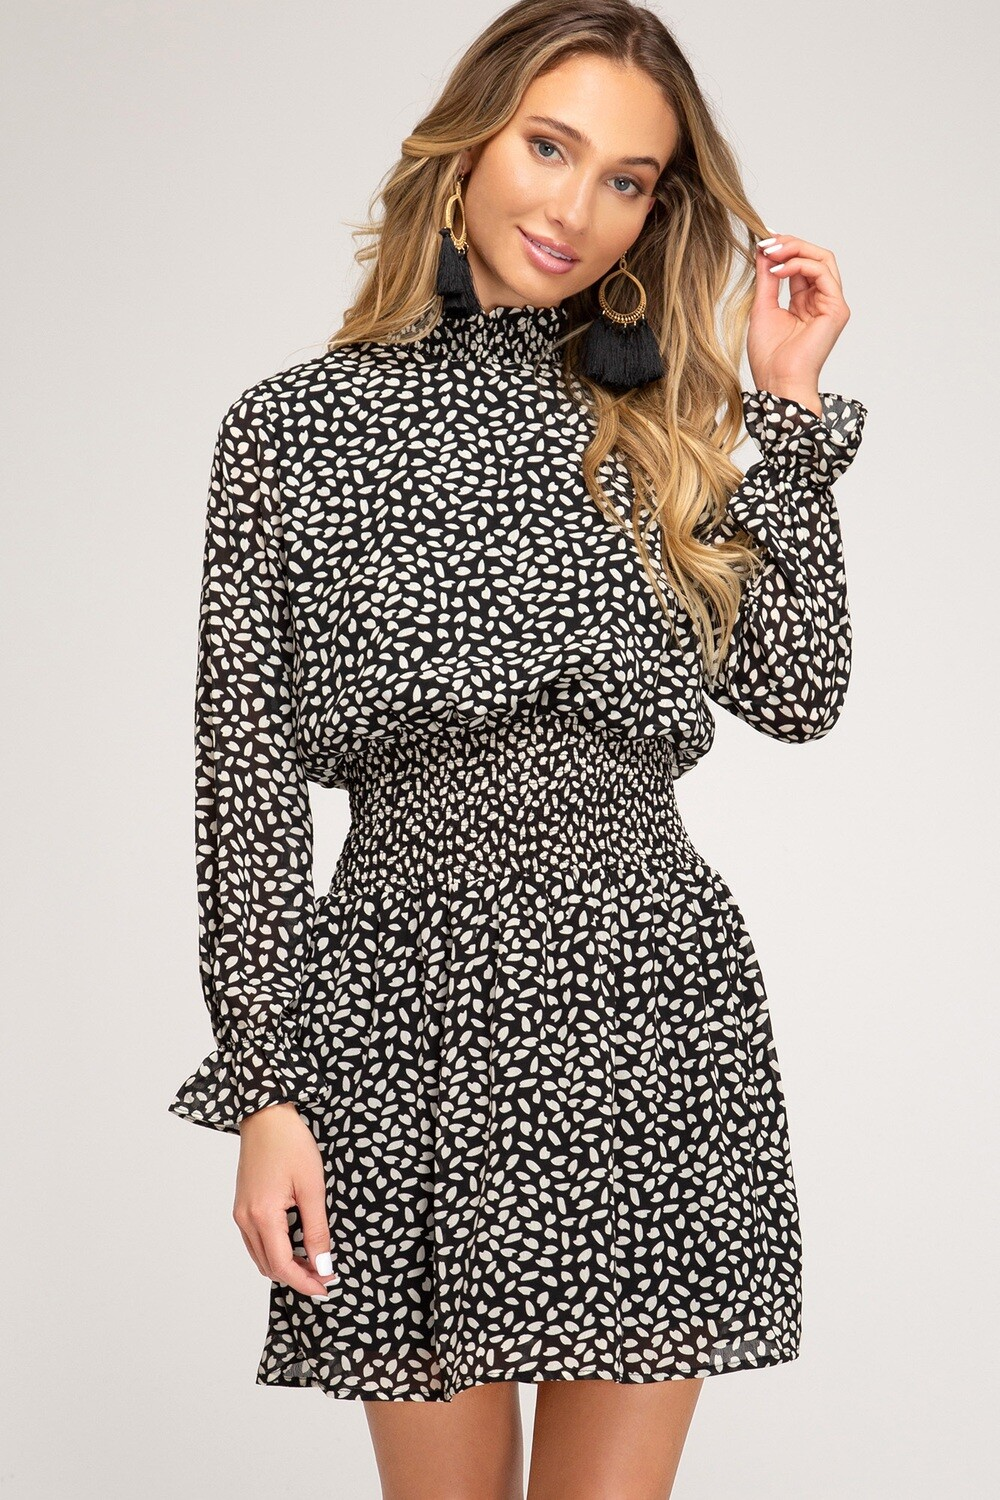 Call You Later Dress-Black